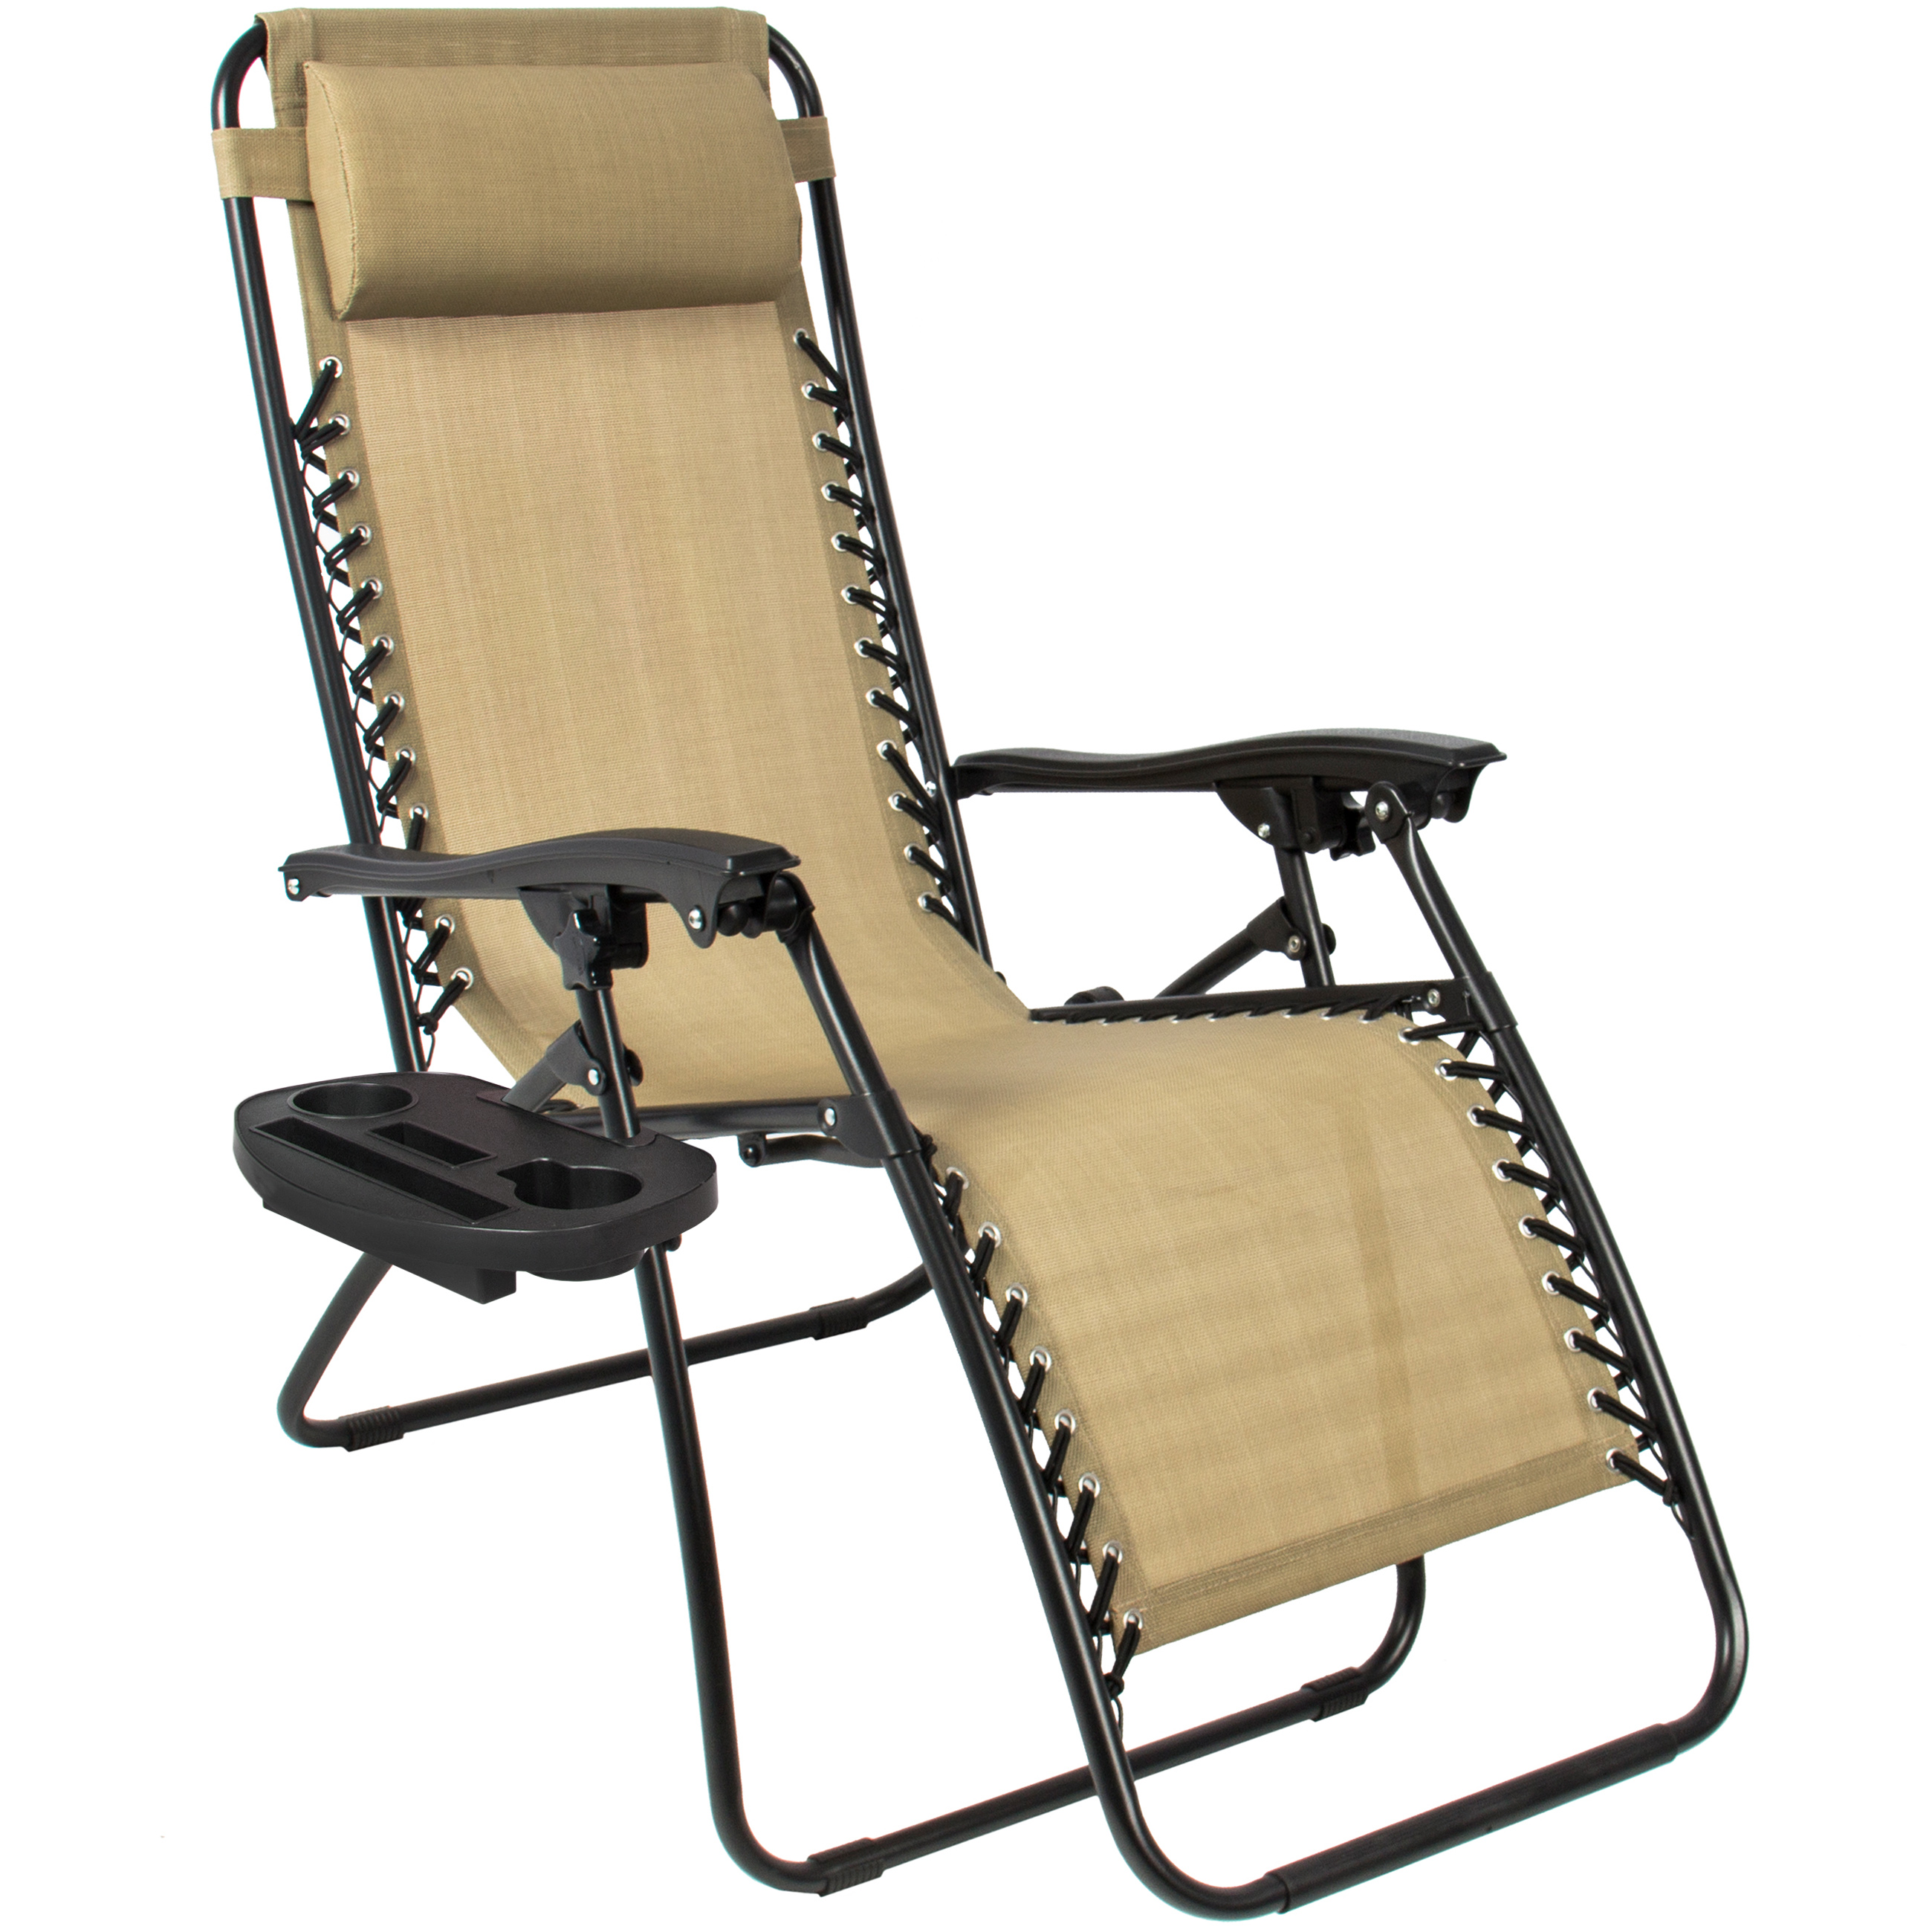 Zero Gravity Chairs Case 2 Lounge Patio Chairs Outdoor Yard